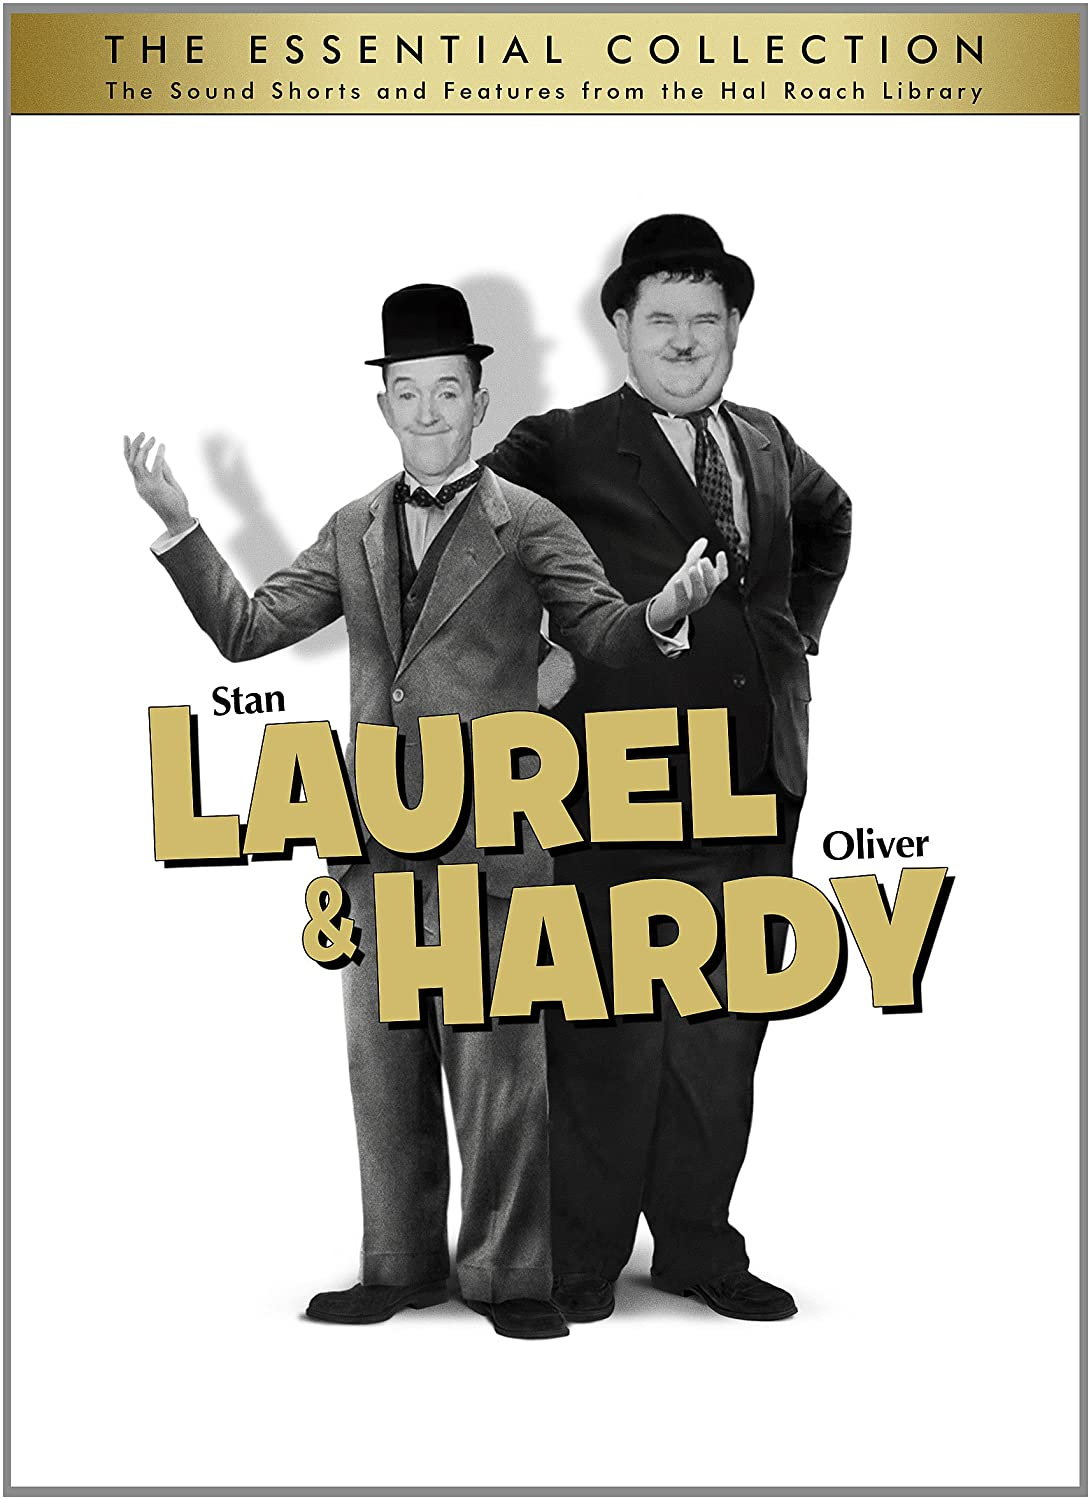 LAUREL HARDYESSENTIAL COLLECTION Amazonin Electronics – Laurel and Hardy Birthday Cards